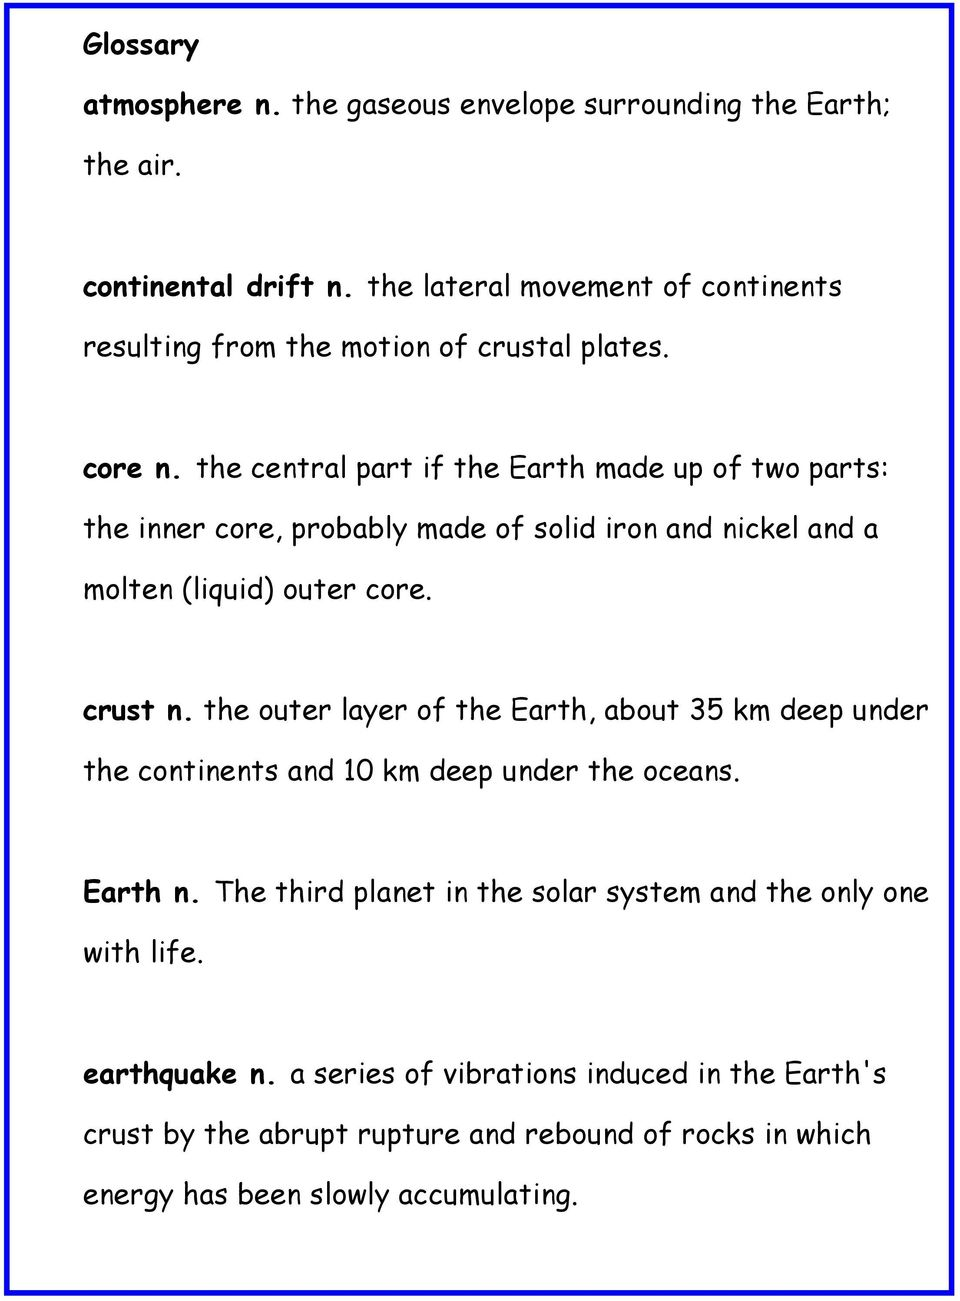 the central part if the Earth made up of two parts: the inner core, probably made of solid iron and nickel and a molten (liquid) outer core. crust n.